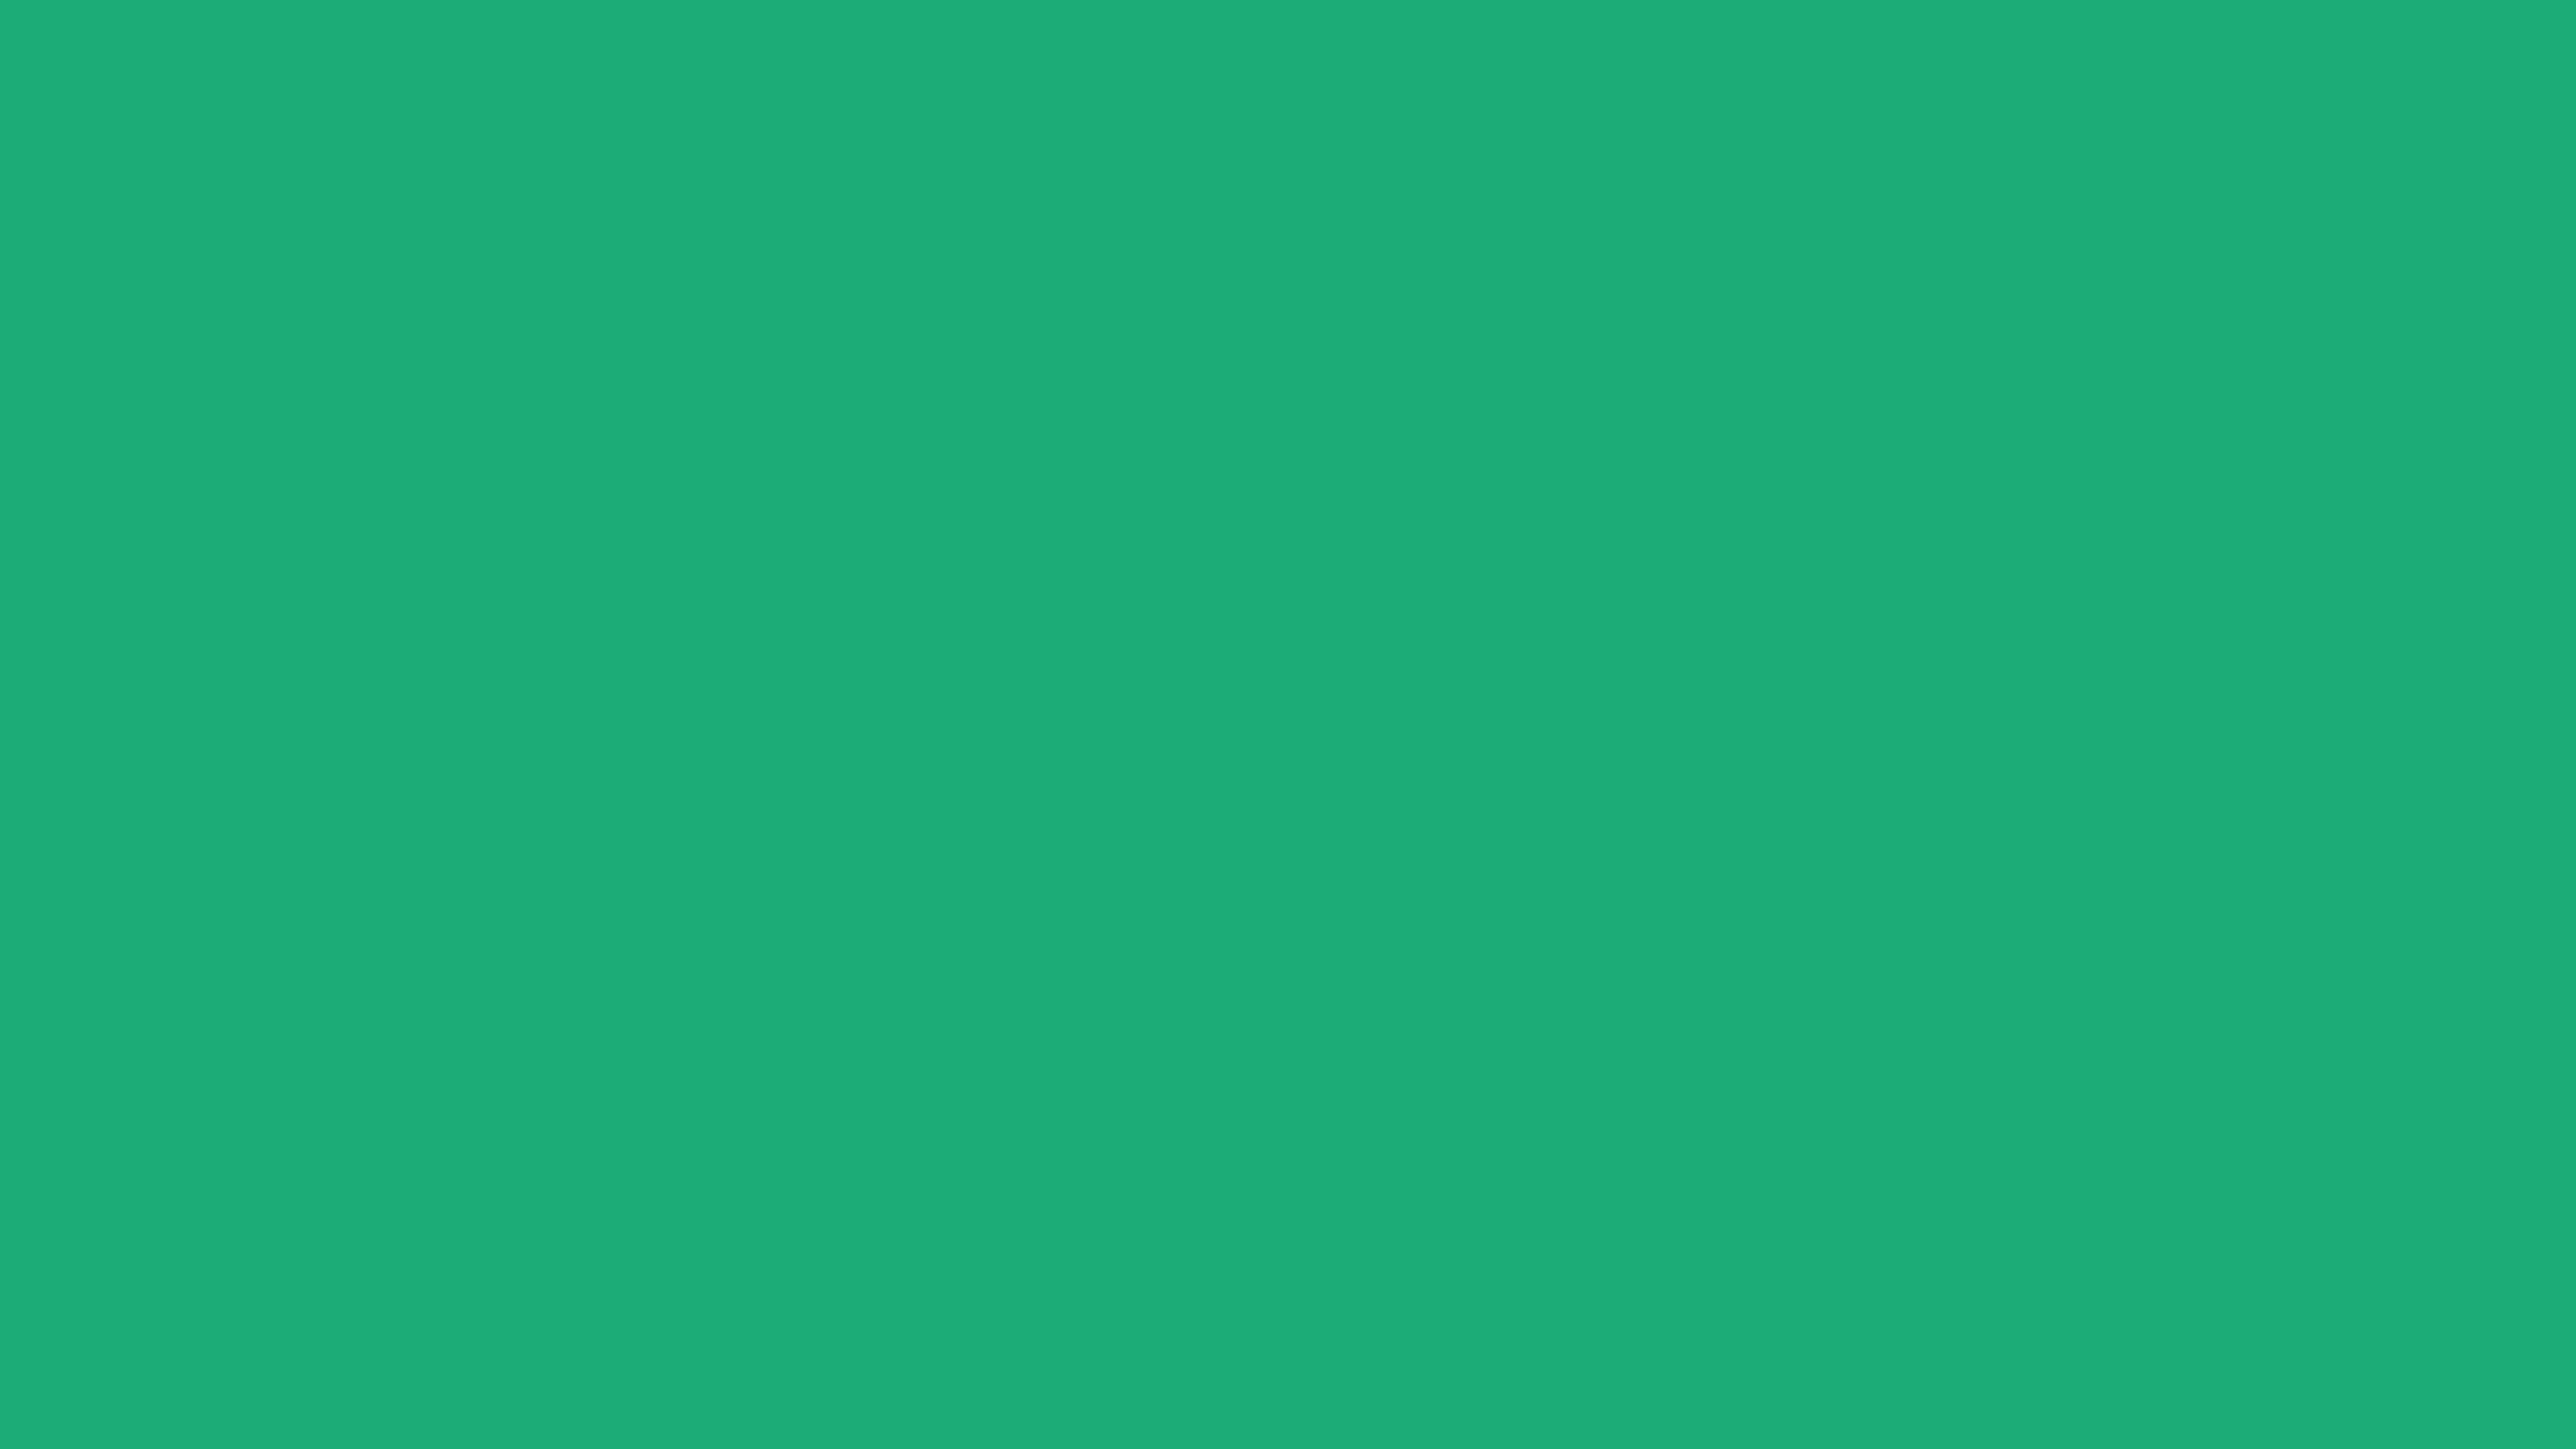 3840x2160 Green Crayola Solid Color Background